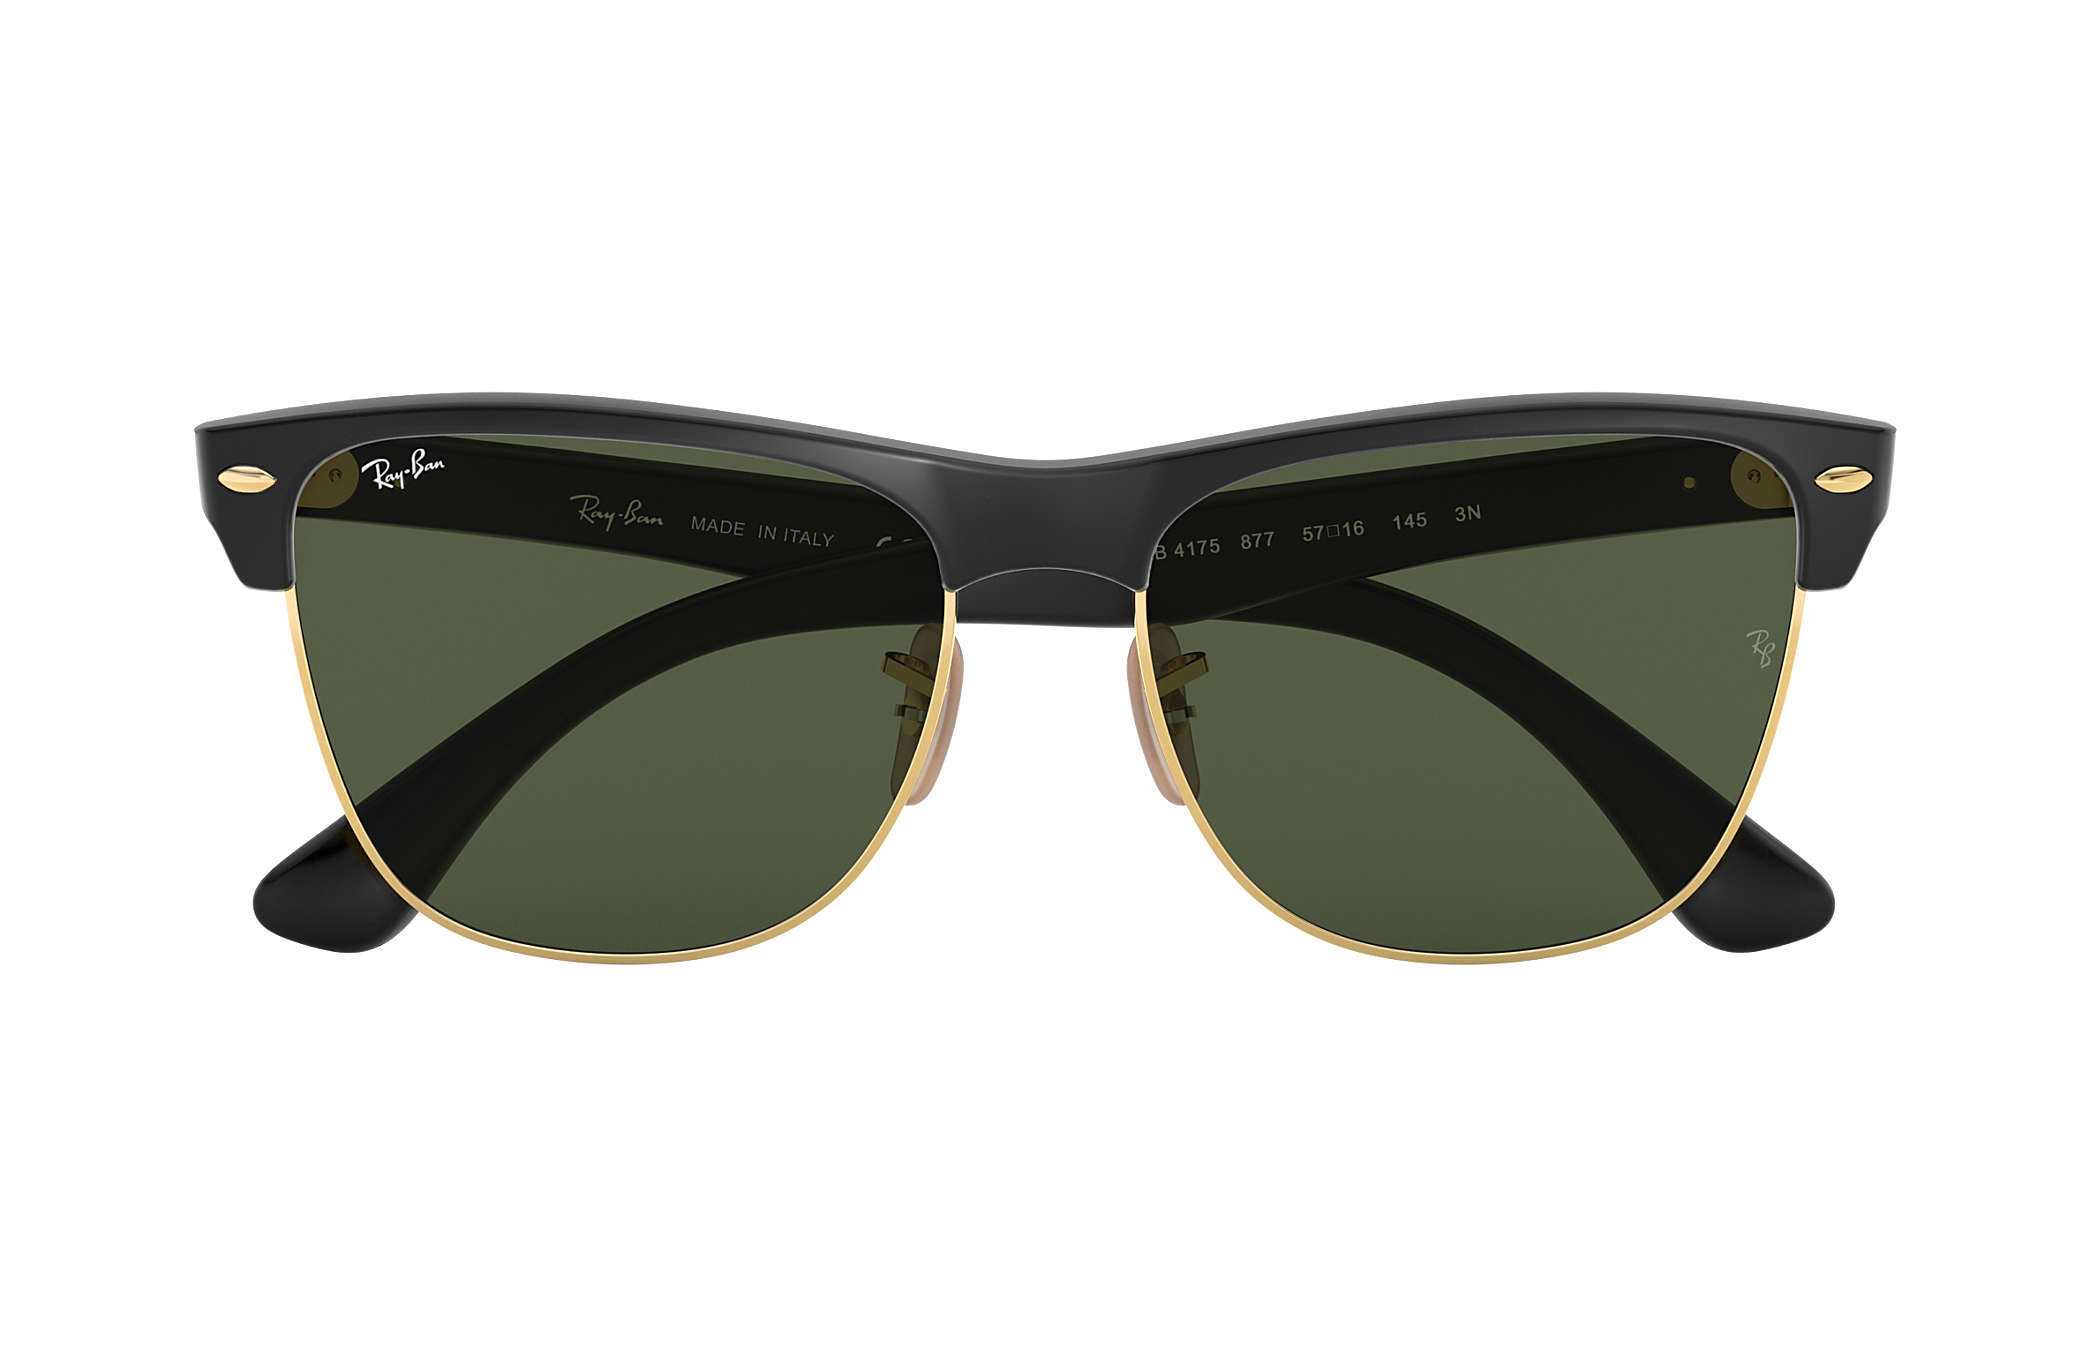 d7c9a0ecd69 Ray-Ban Clubmaster Oversized RB4175 Black - Nylon - Green Lenses ...